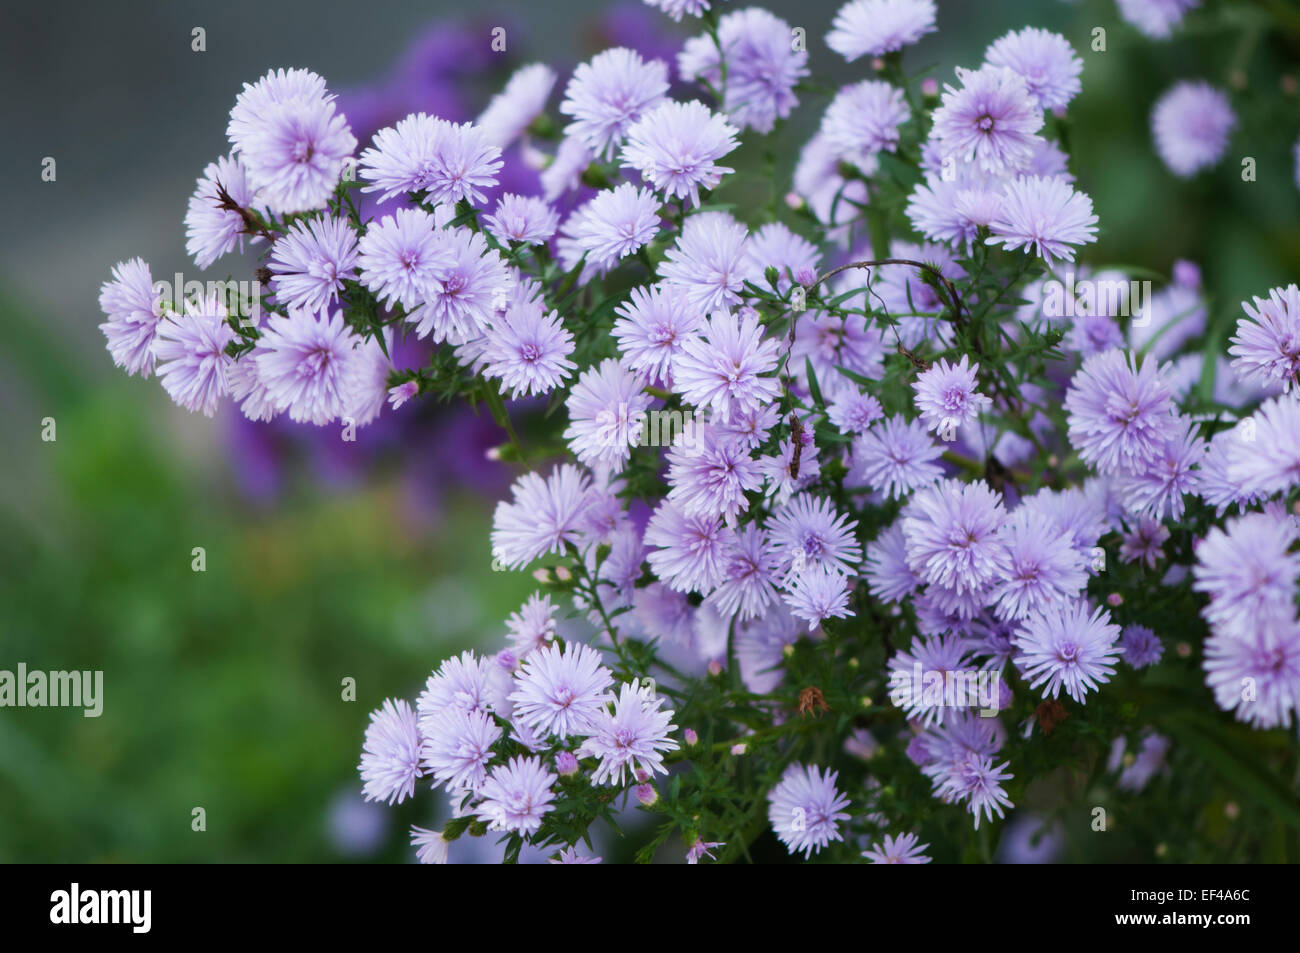 Perennial aster stock photos perennial aster stock images alamy growing plant of perennial aster flower in bloom in the fall stock image mightylinksfo